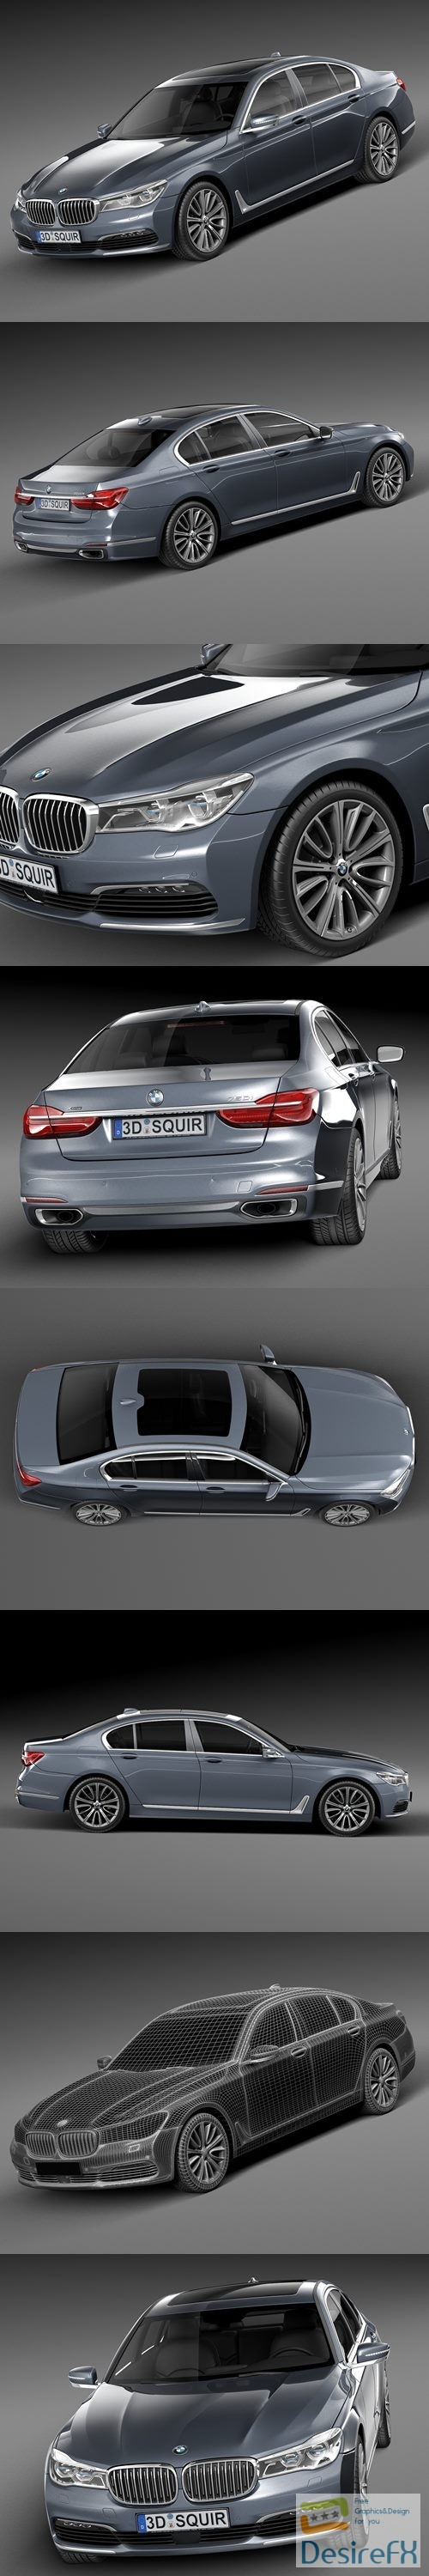 3d-models - BMW 7-series G11 2016 3D Model